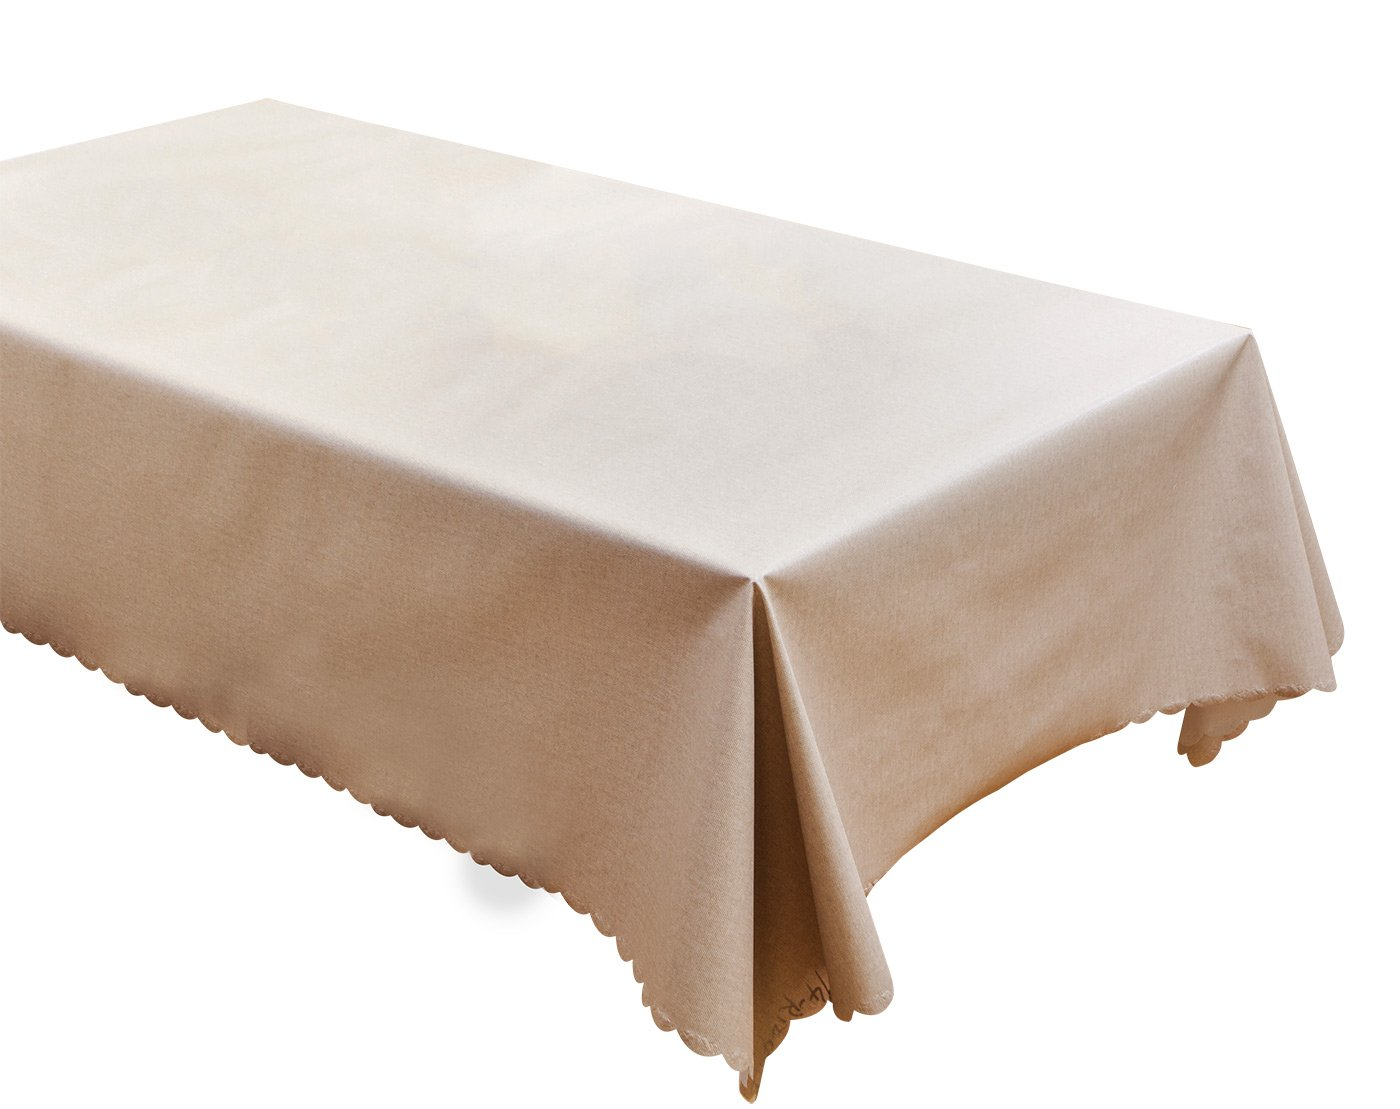 FEOYA Oil Cloth Vinyl Tablecloth Outdoor Tablecloths Durable Dust-proof Everyday Cloth for Table Natural 53 x 87 Inch